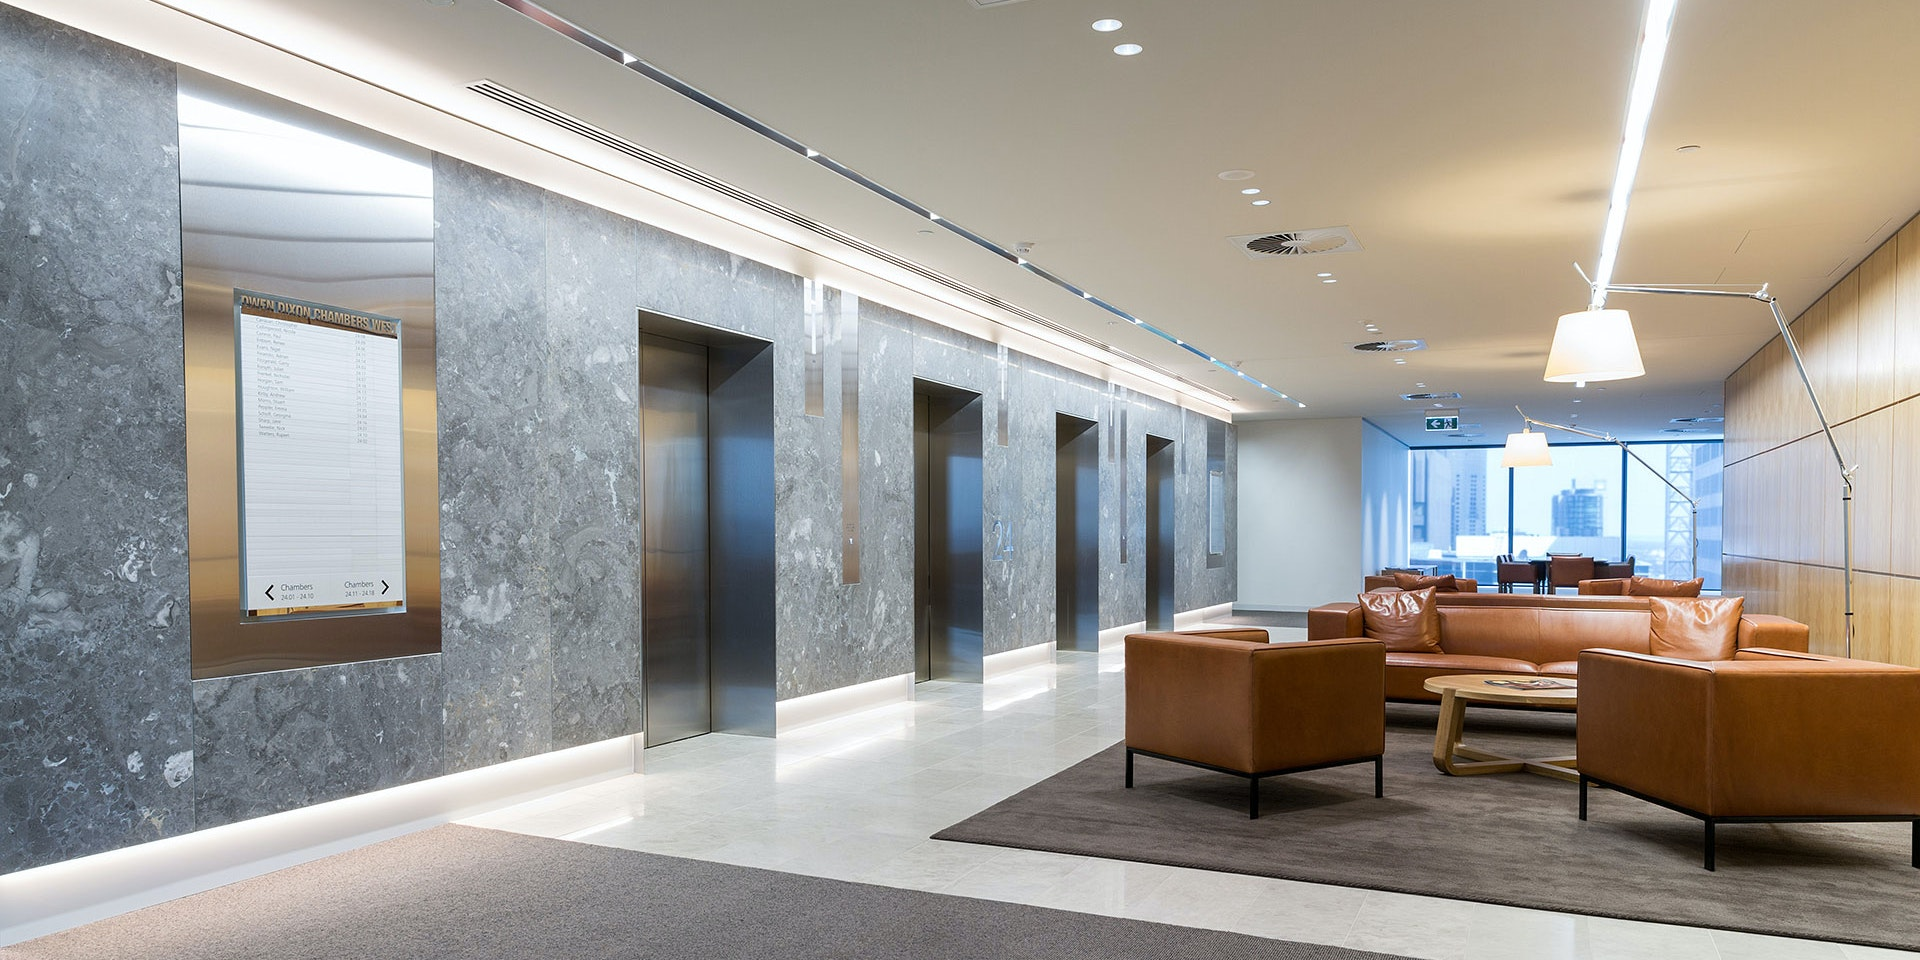 Multo LED strip in application, installed in the Owen Dixon Chambers. The clean contemporary lines were given a striking edge of even illumination using Multo in the lift lobby areas.